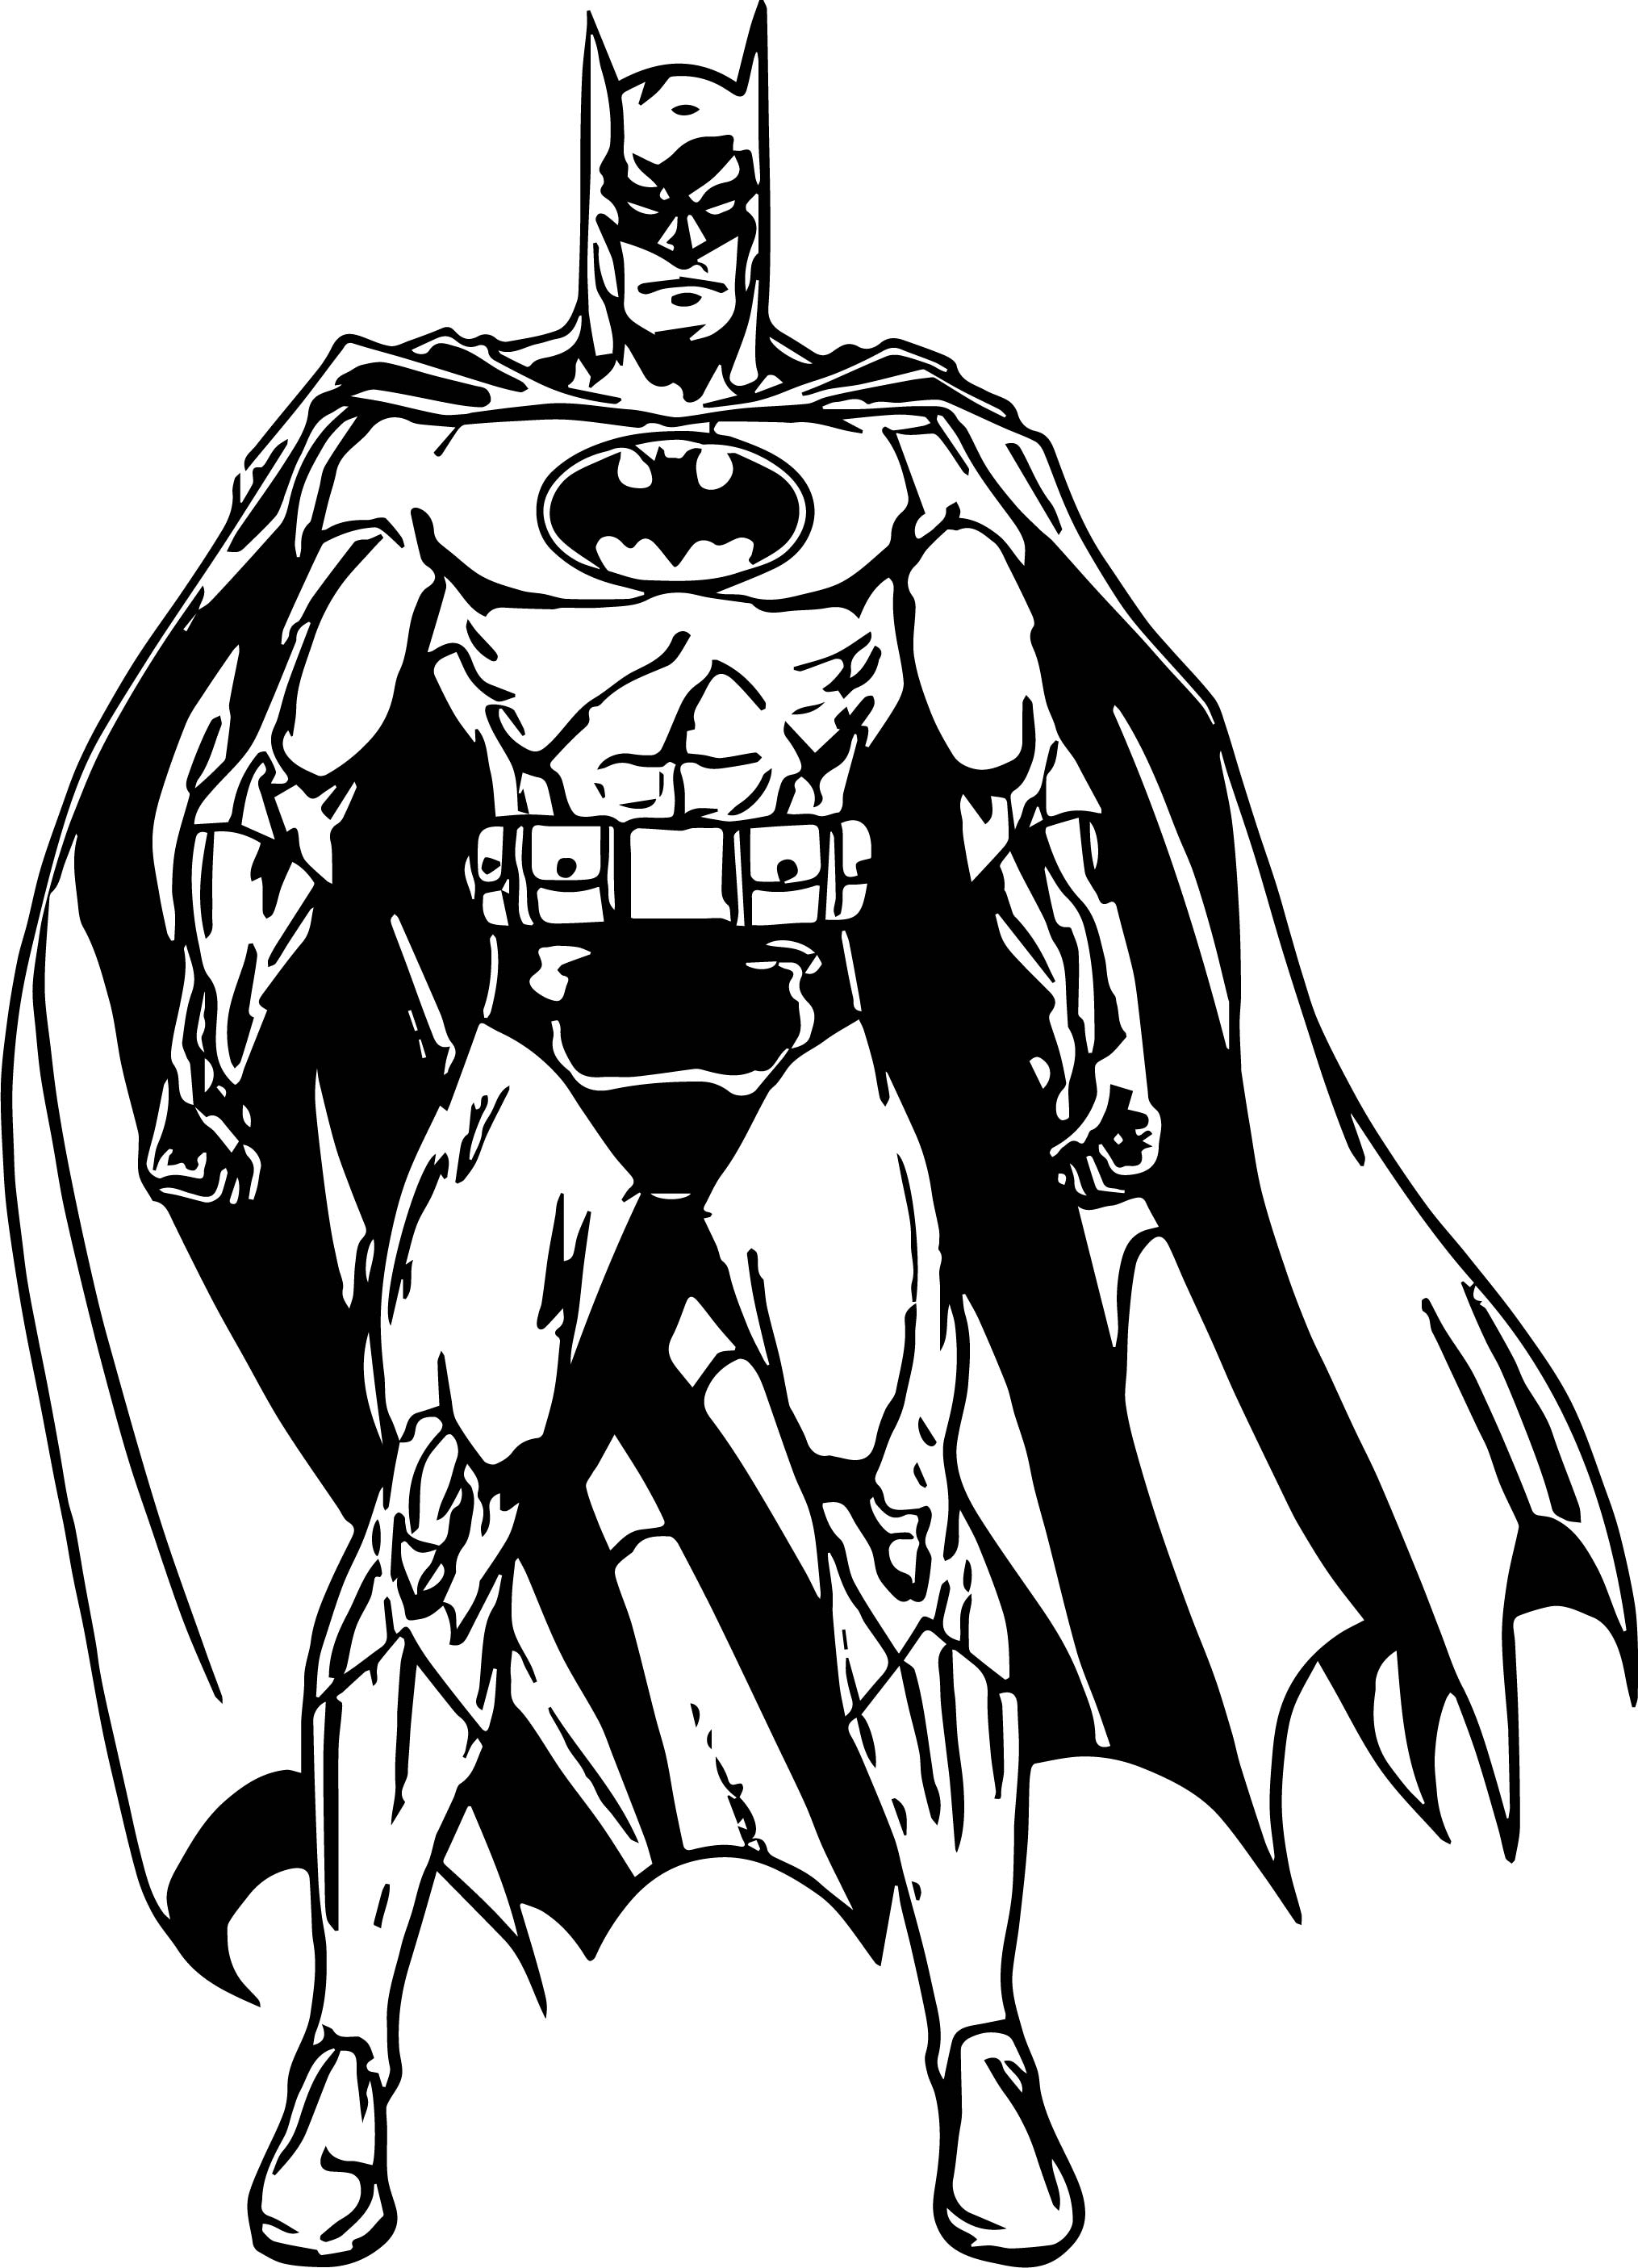 superheroes batman waiting super hero coloring page wecoloringpage